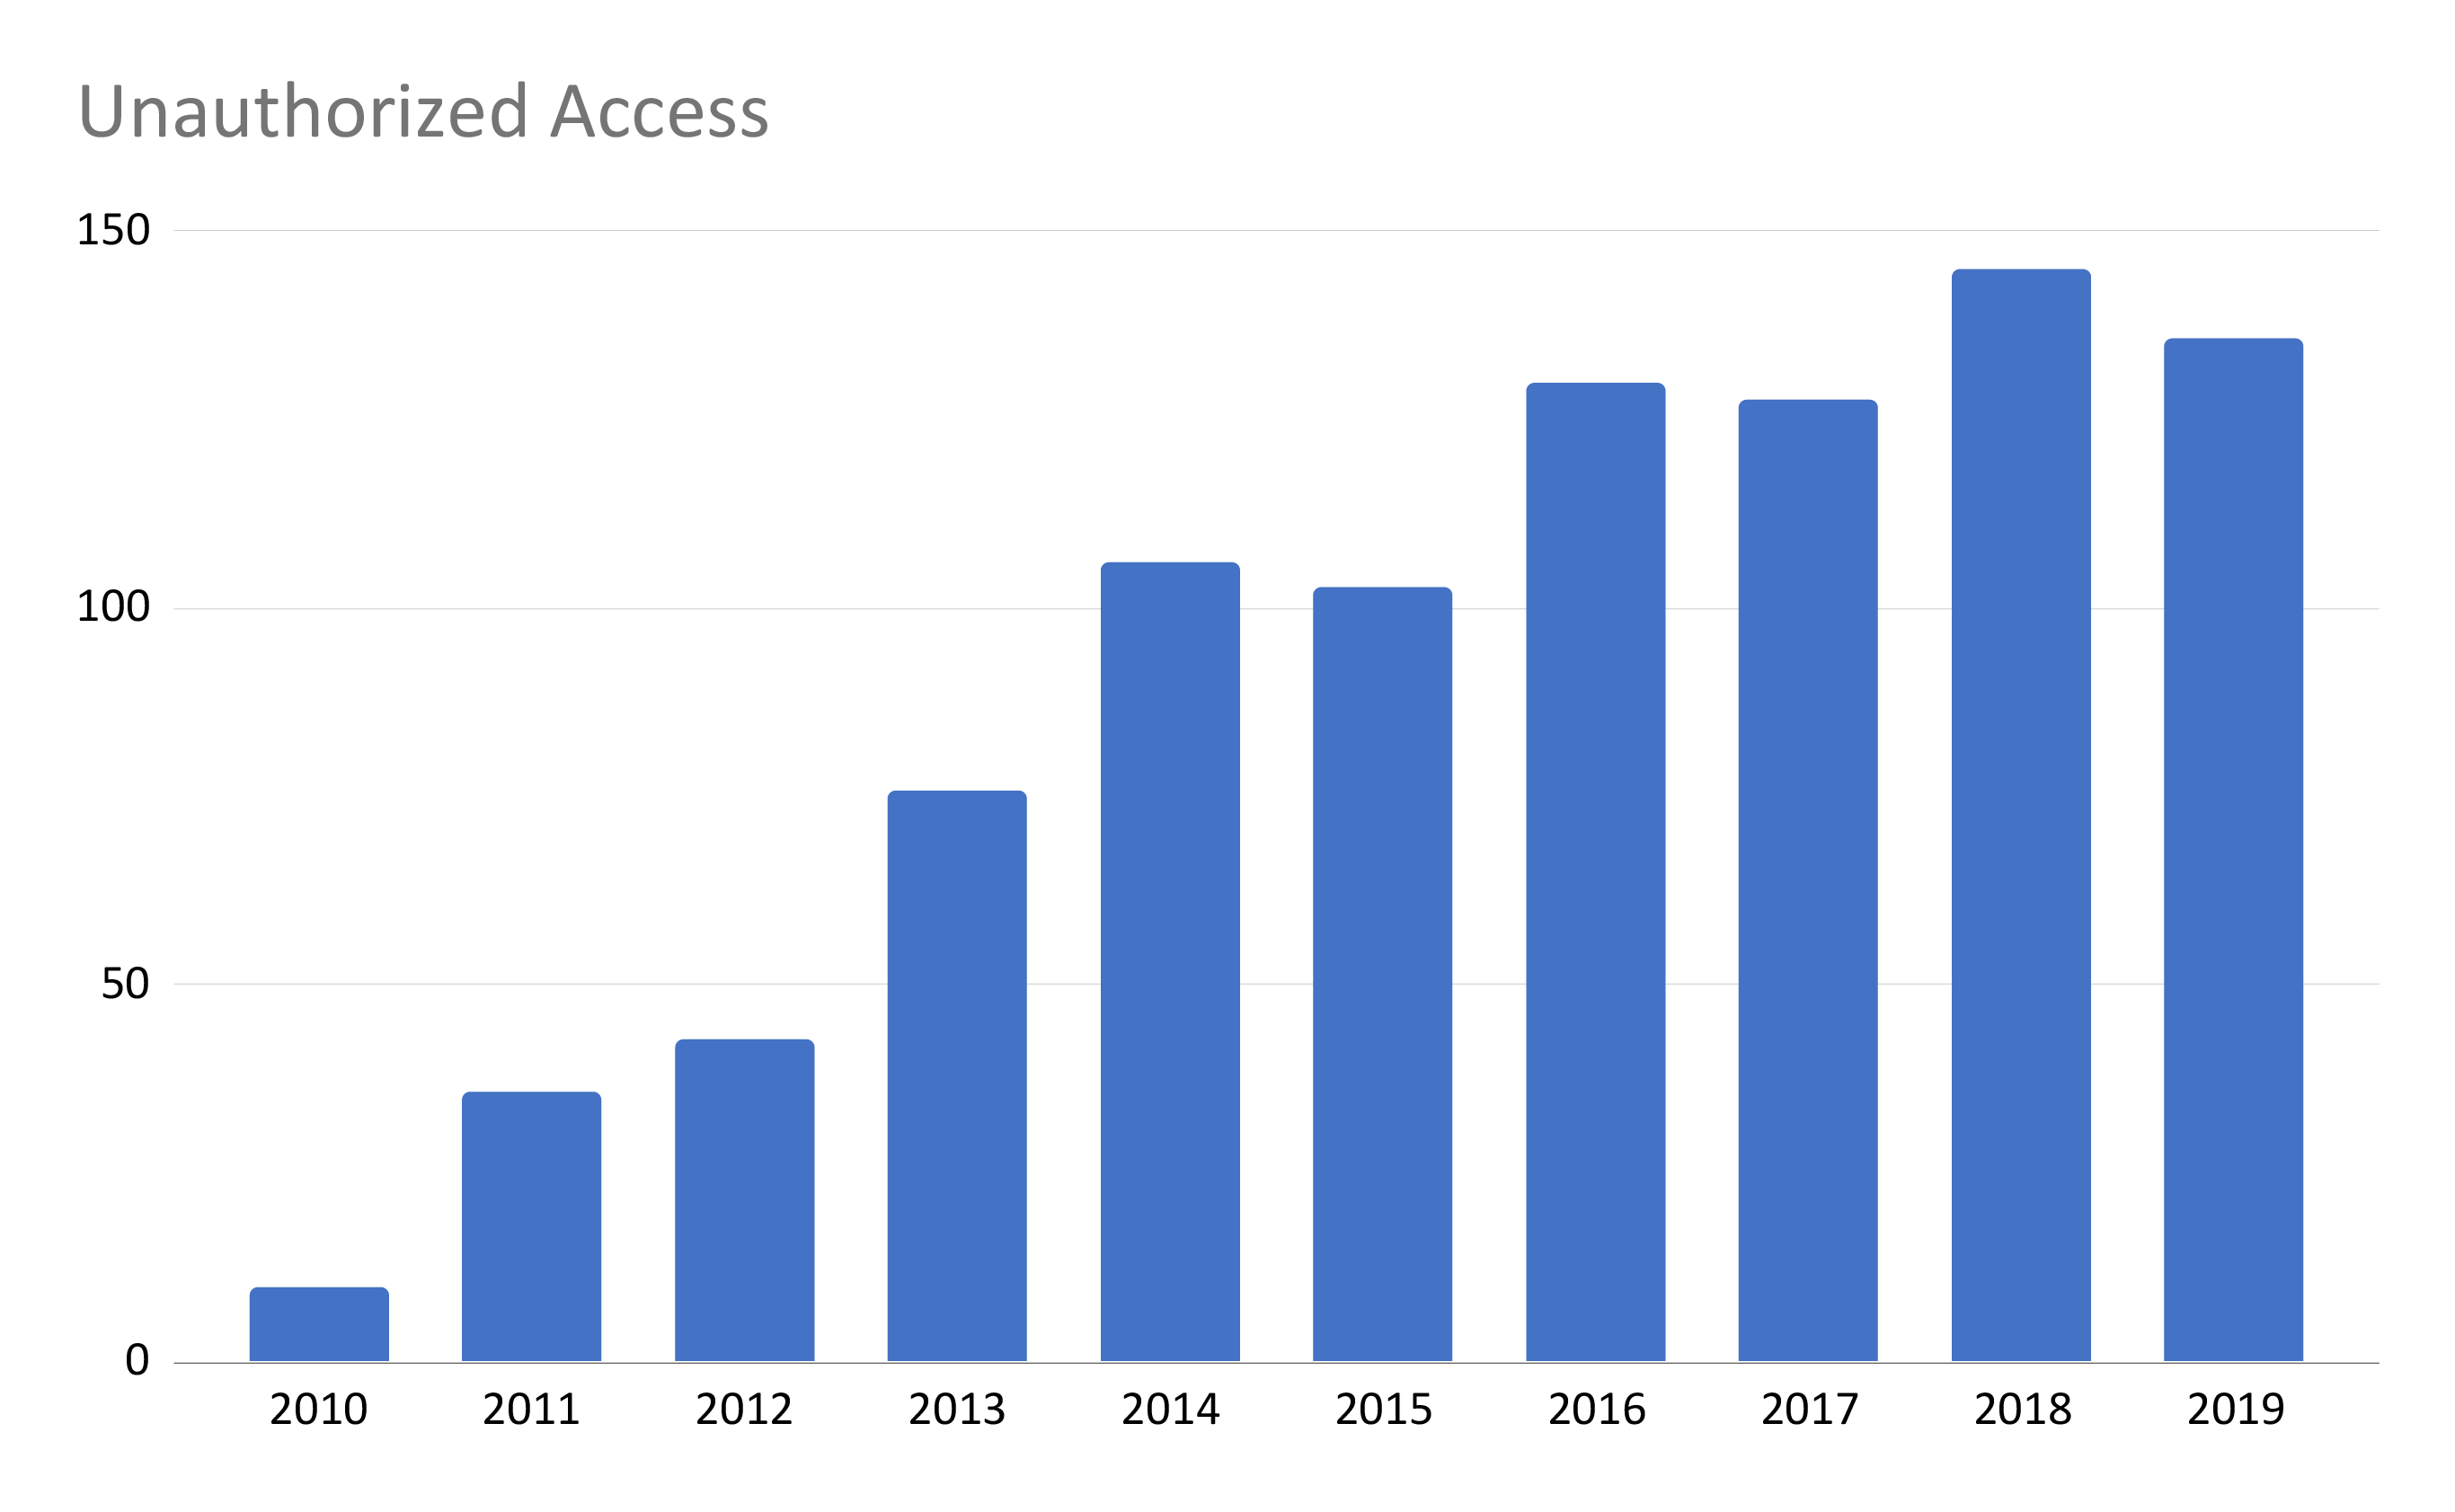 Unauthorized Access/Disclosure Over Time